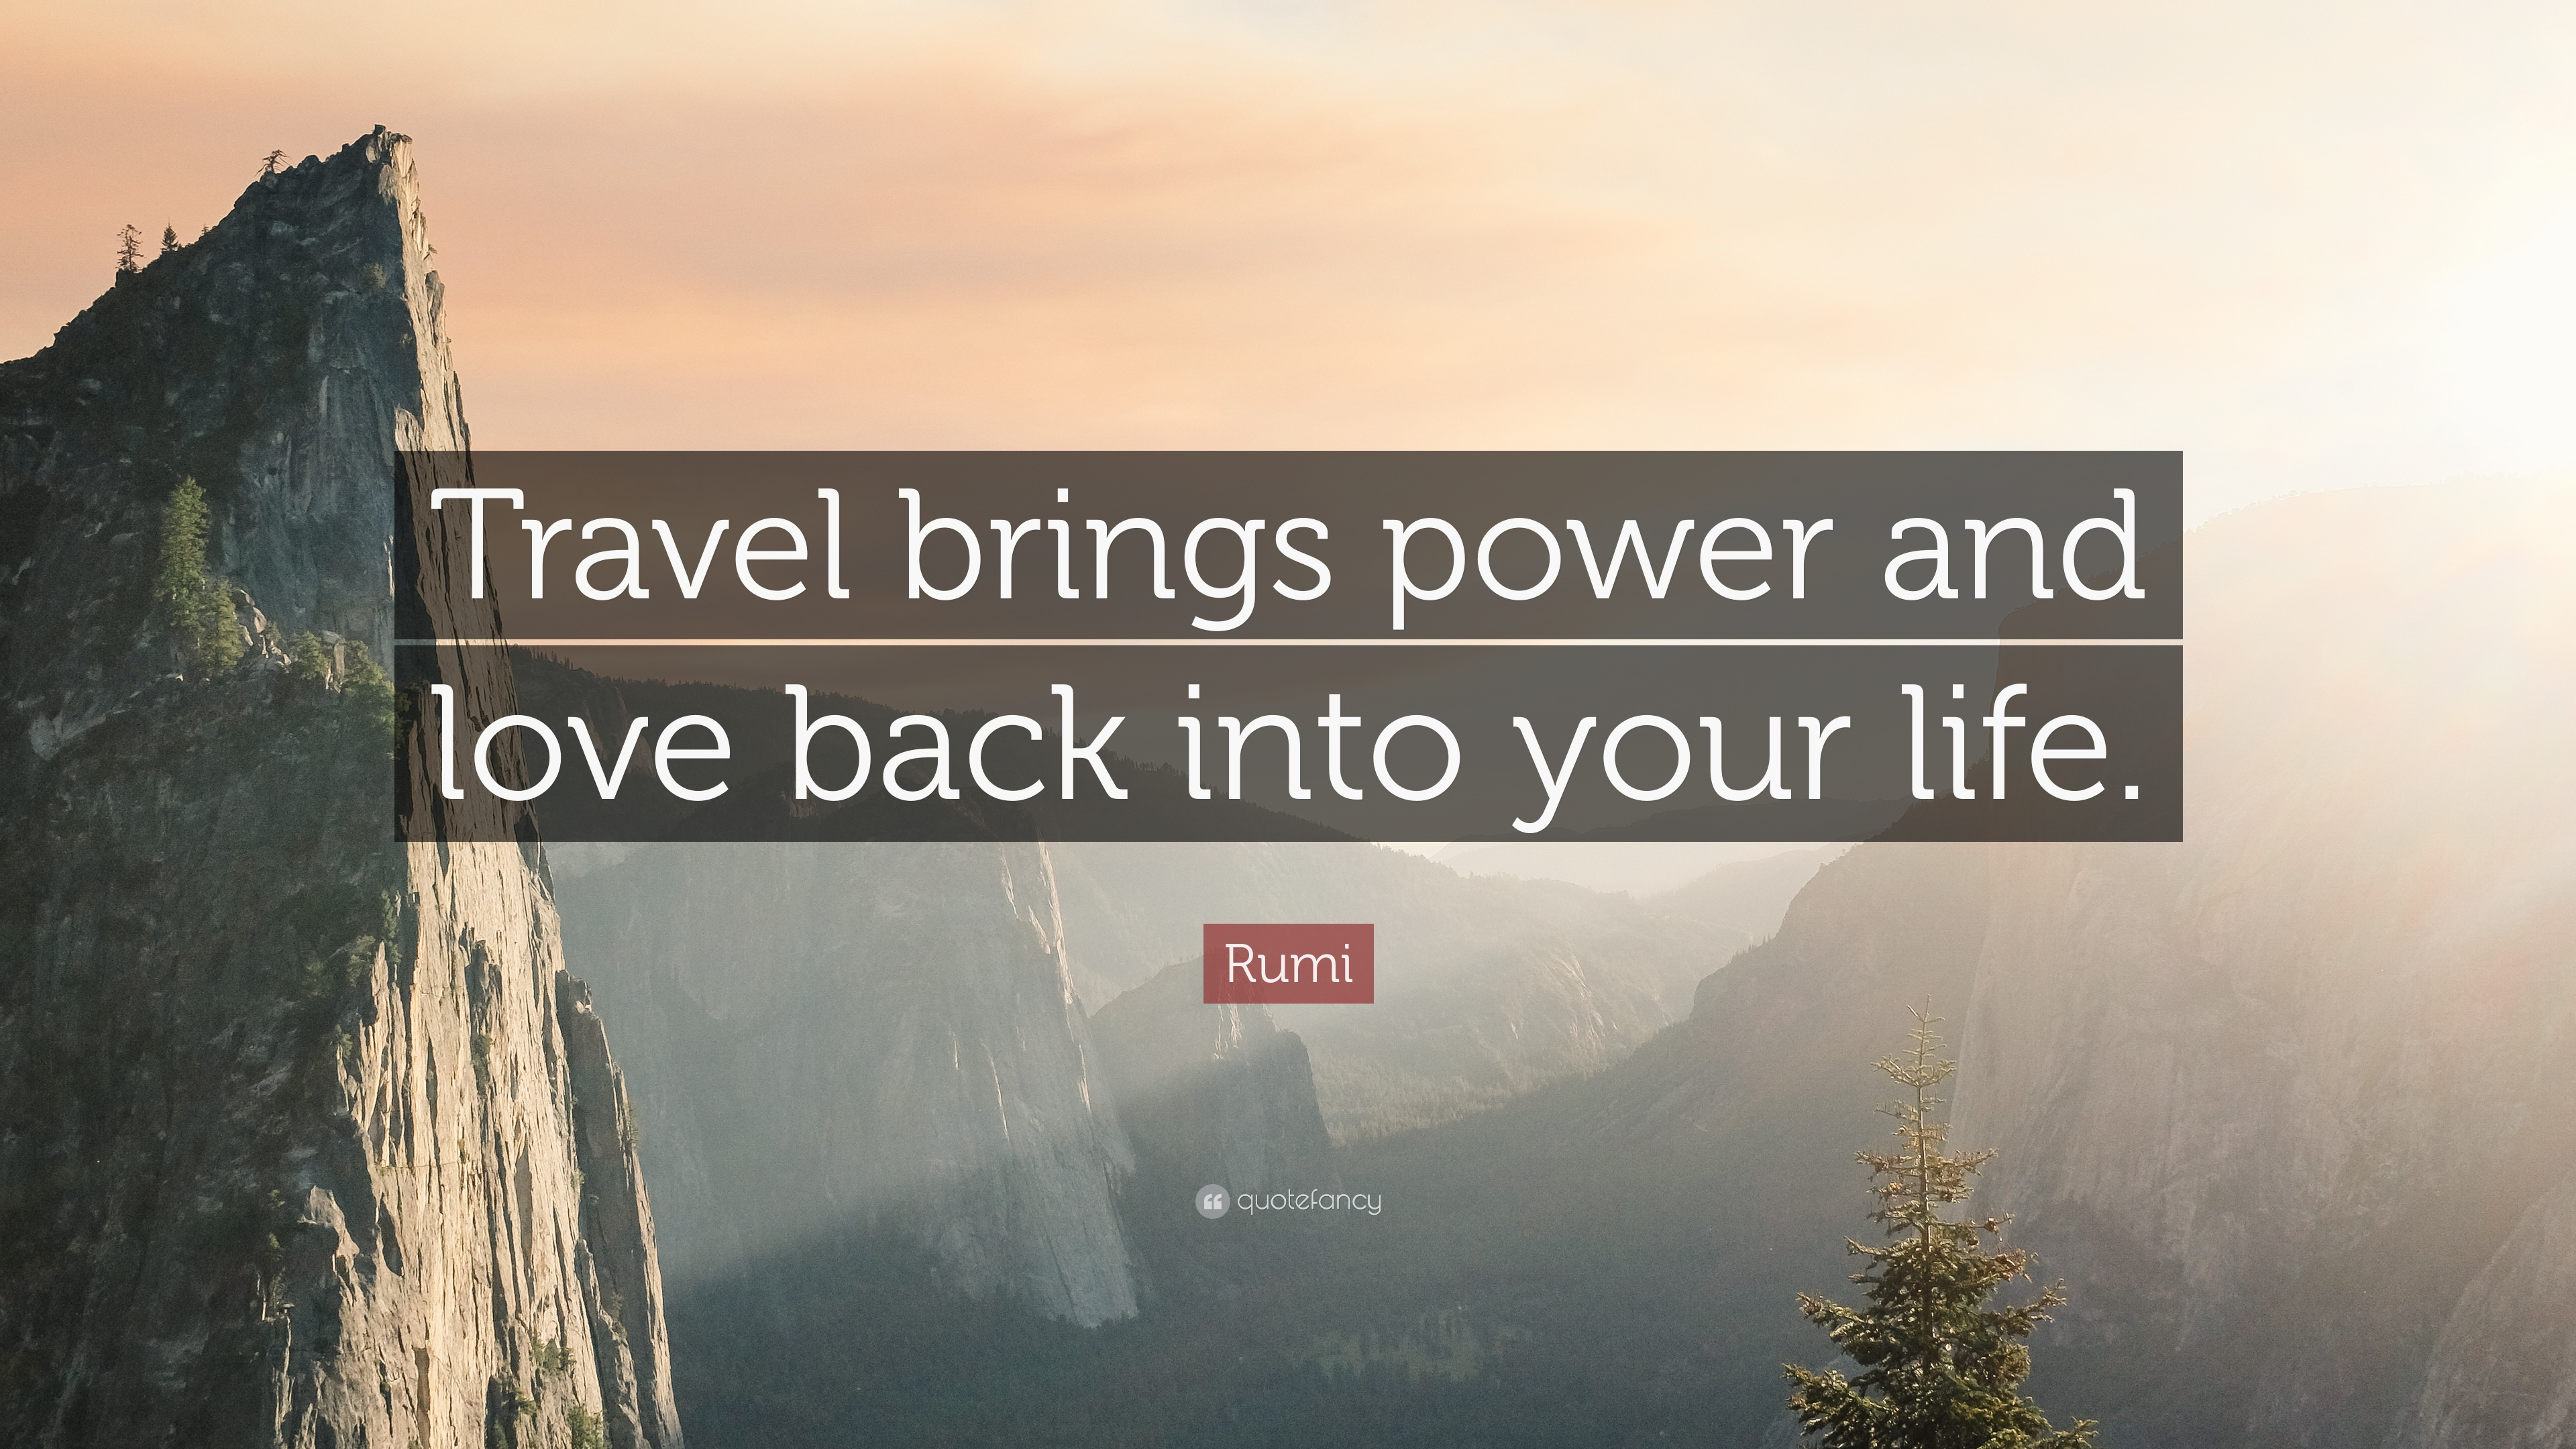 70 Rumi Quotes About Love Life and Light 2019